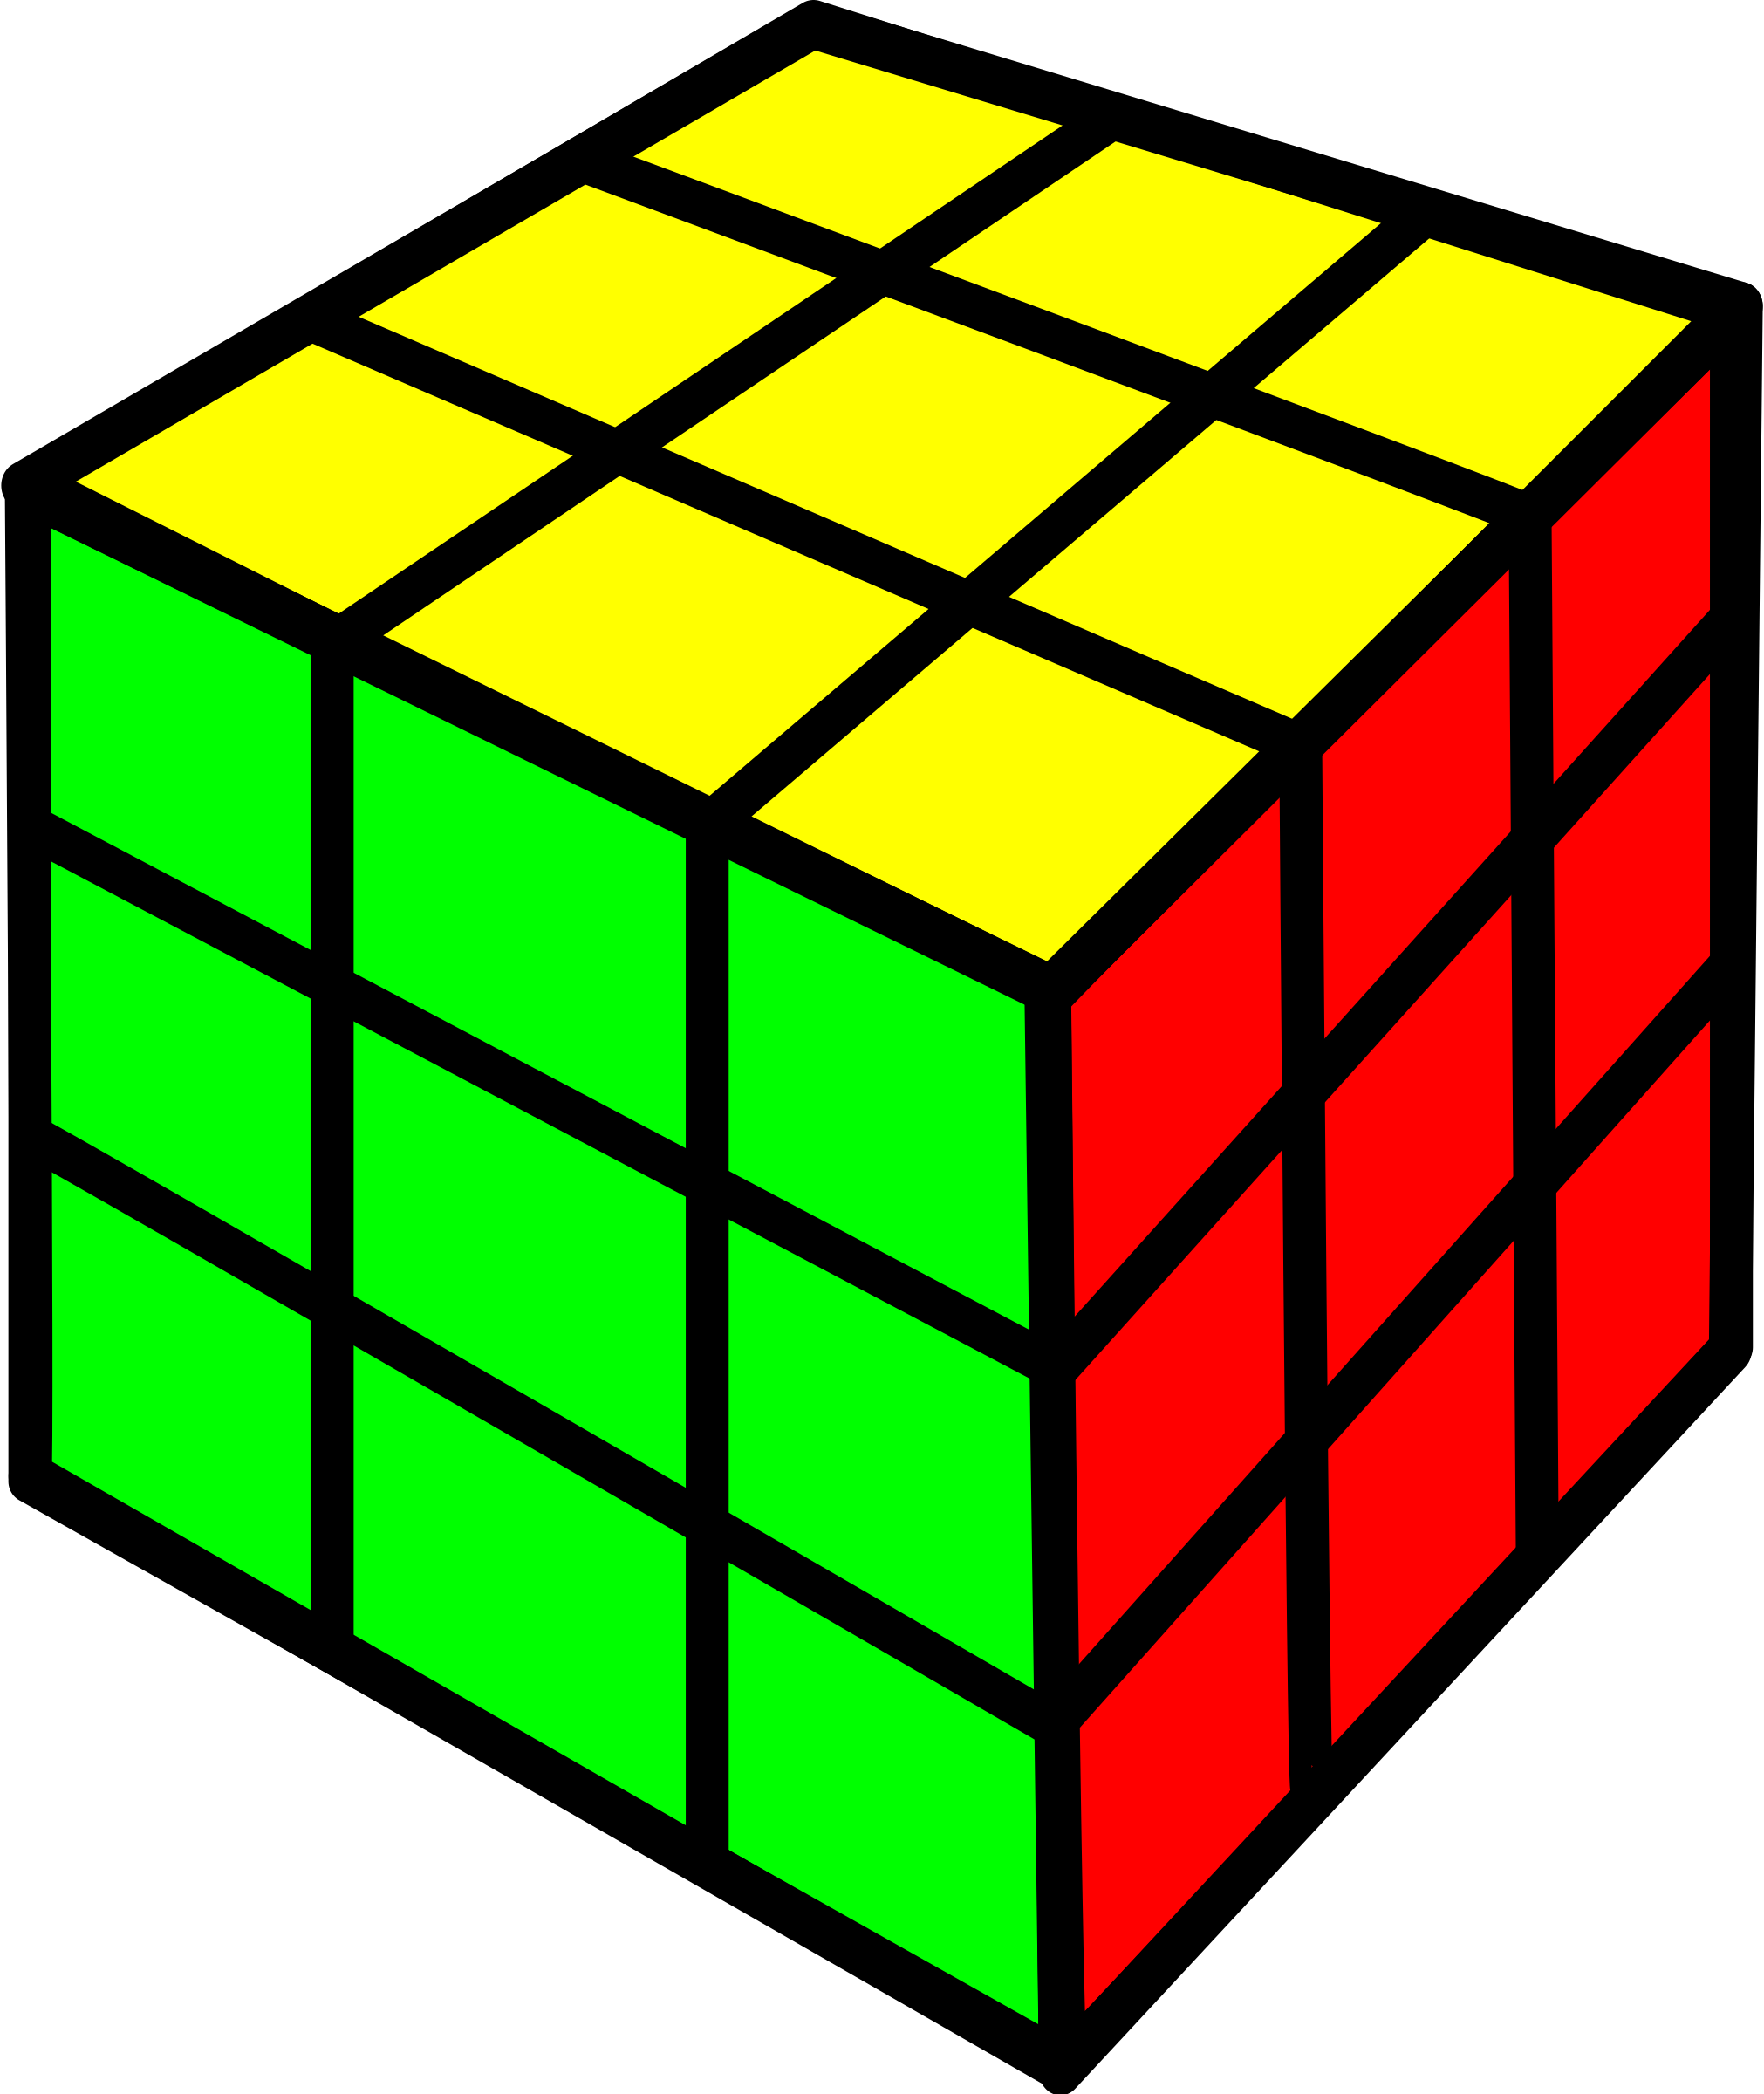 Rubik cube big image. Square clipart square shaped